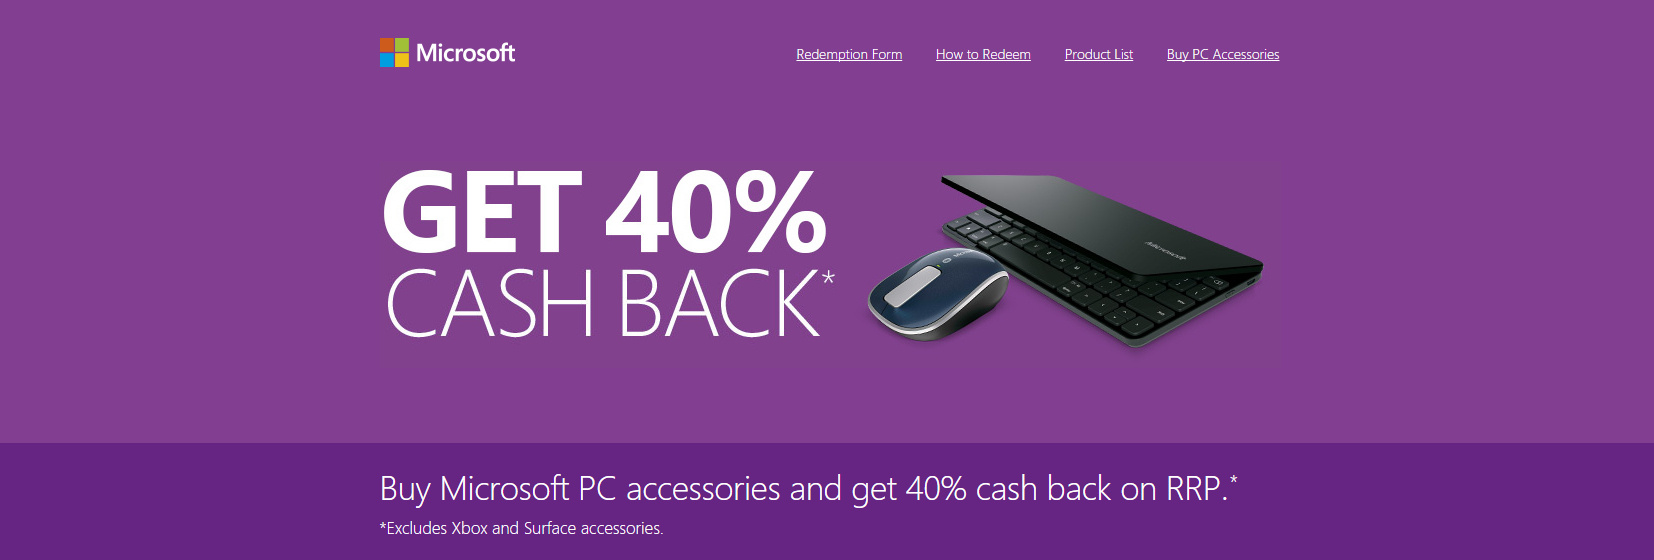 购买Microsoft PC accessories 40% Cash Back